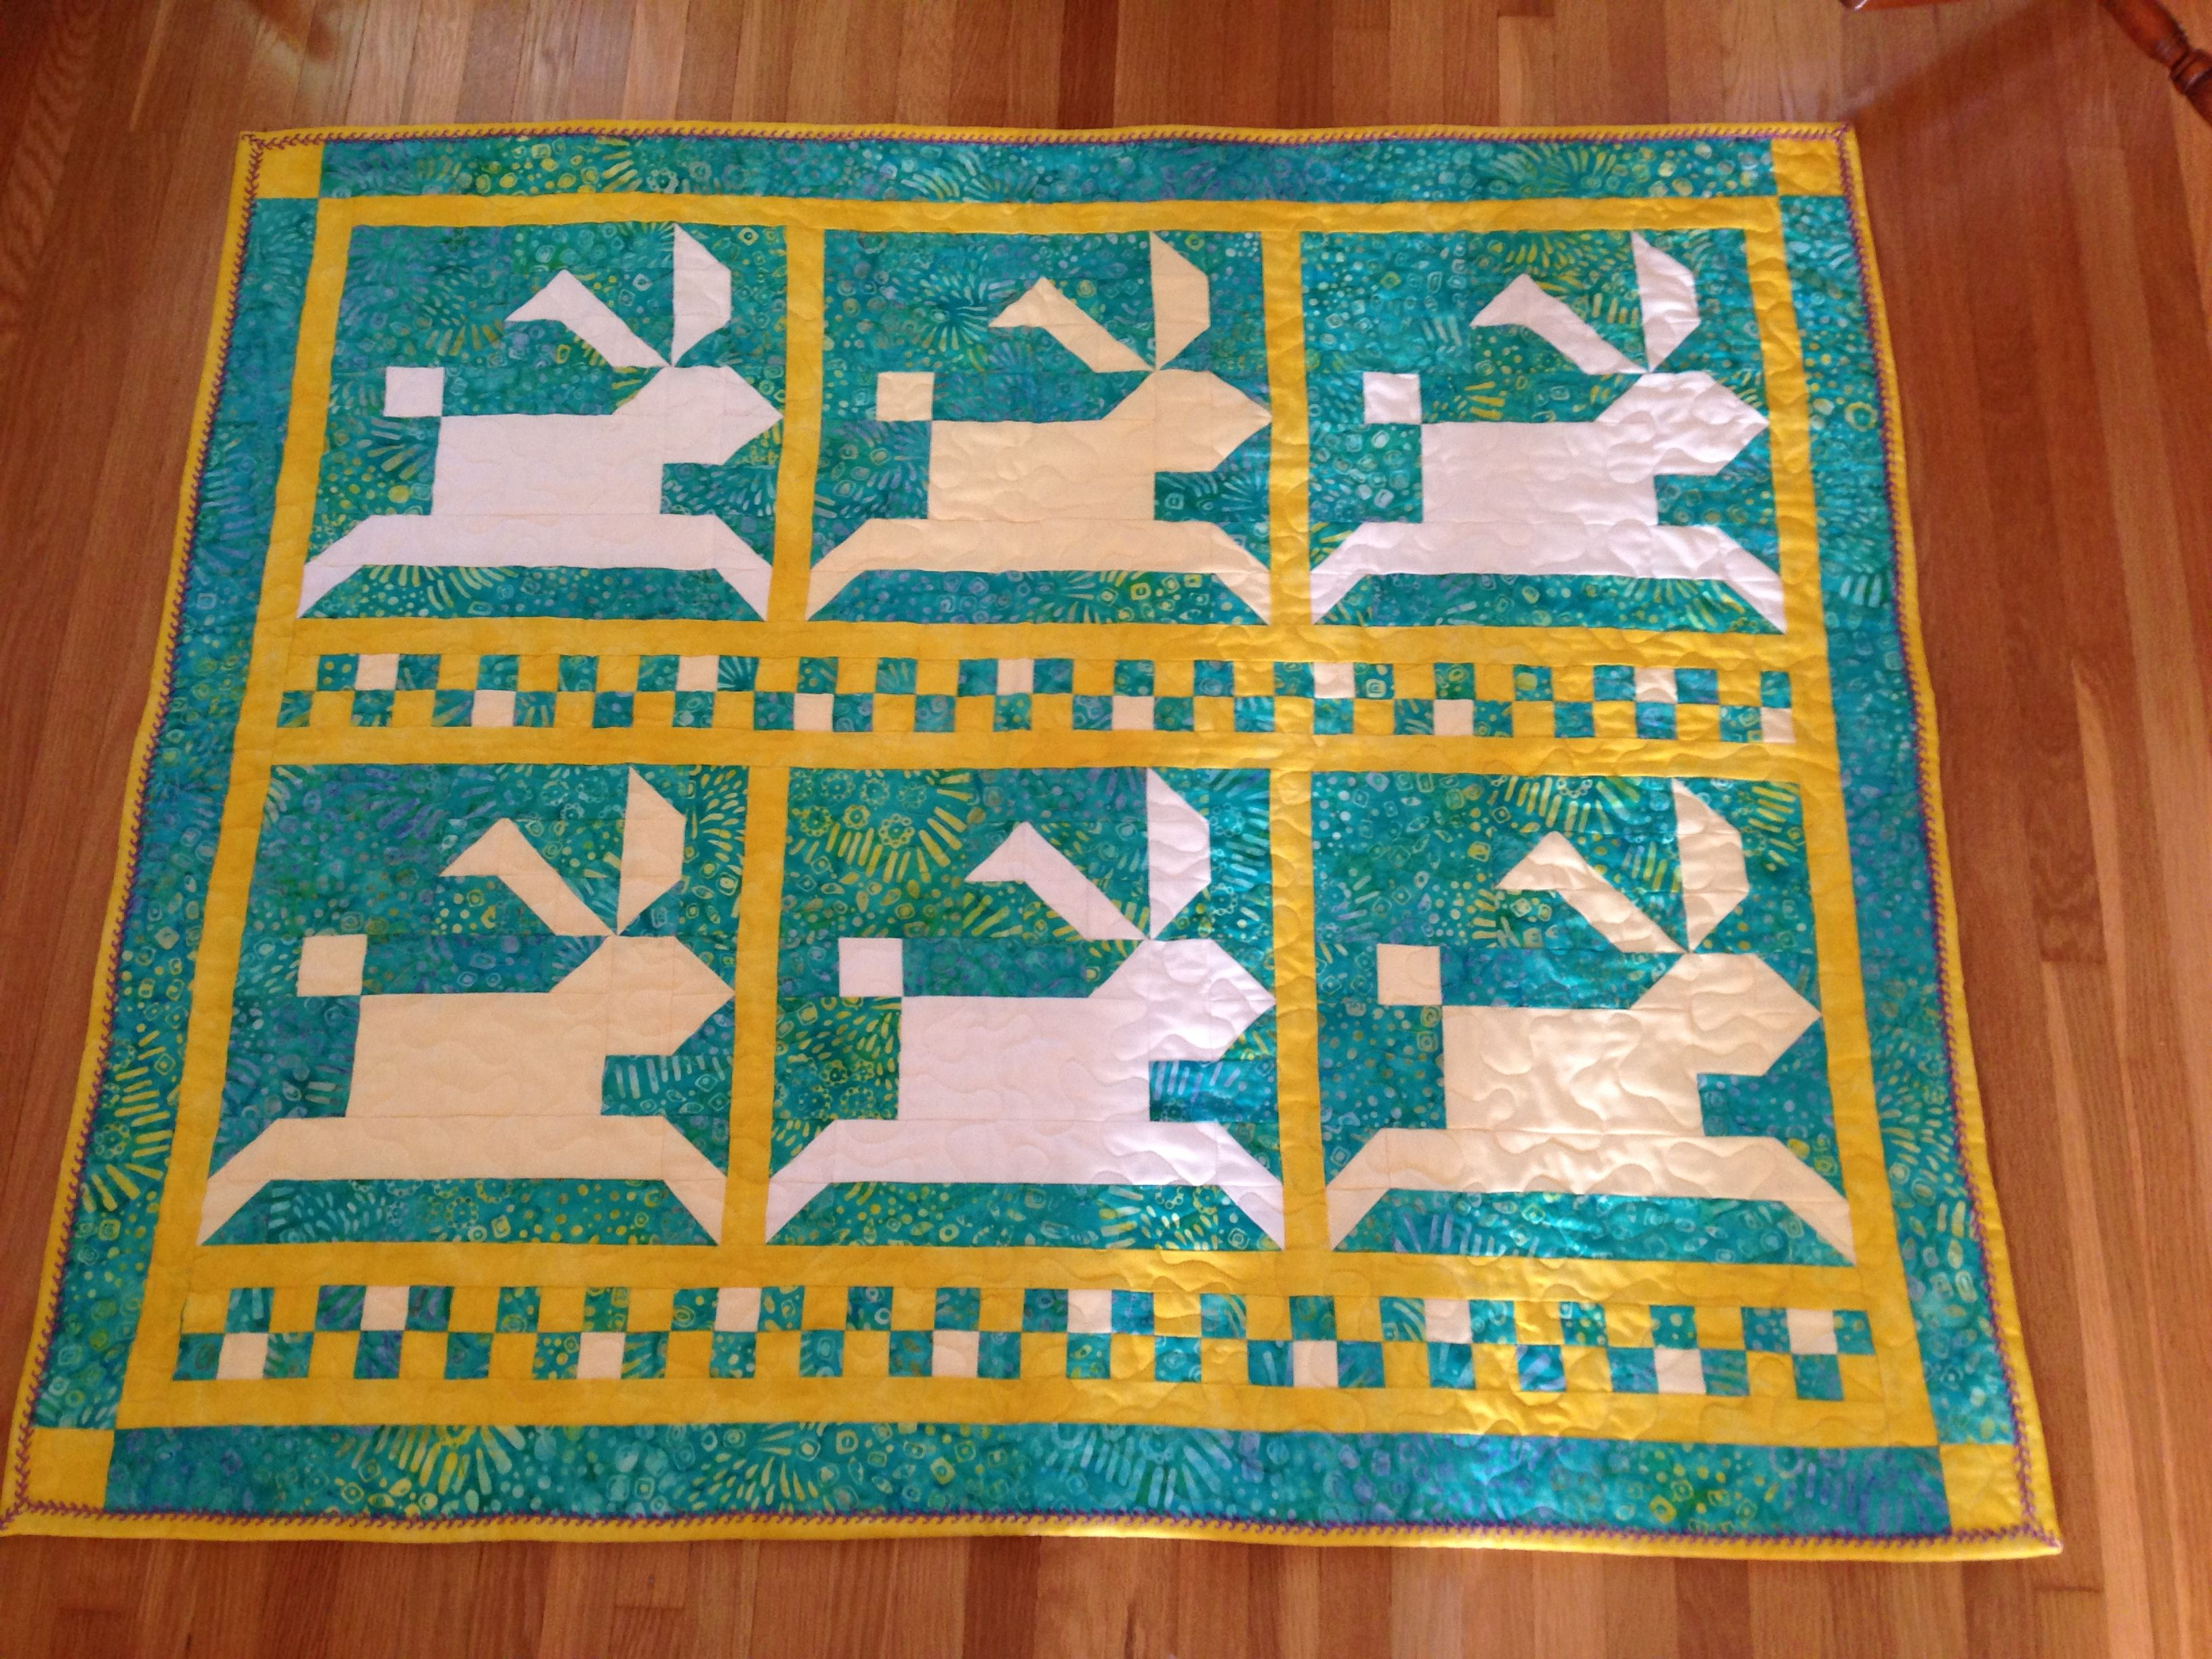 Quilt for Molly Elizabeth Robb.